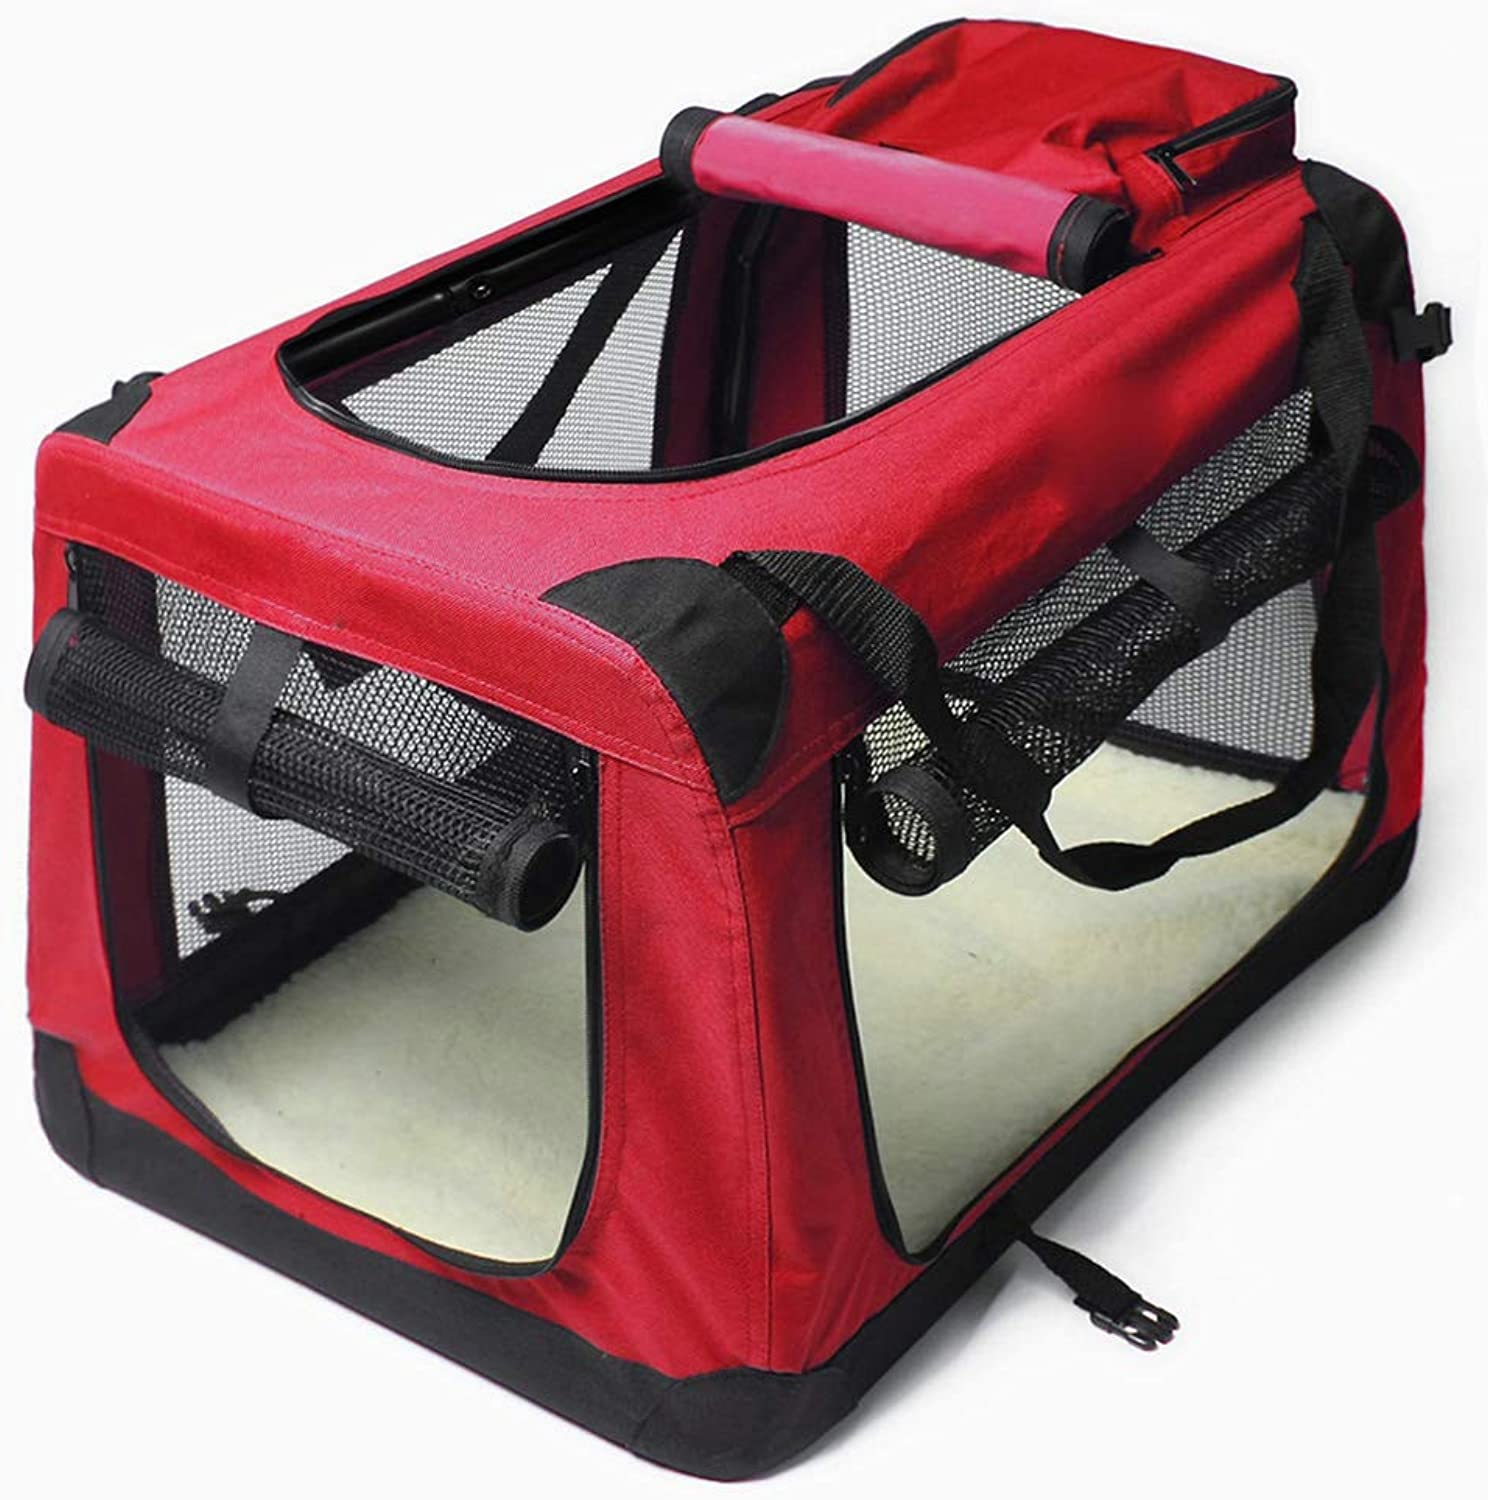 Pet Travel Carrier,pet Handbag,SoftSided Pet Travel Carrier for Cats,Airline Approved Pet Carriers,Puppy Comfort Portable Foldable Pet Bag